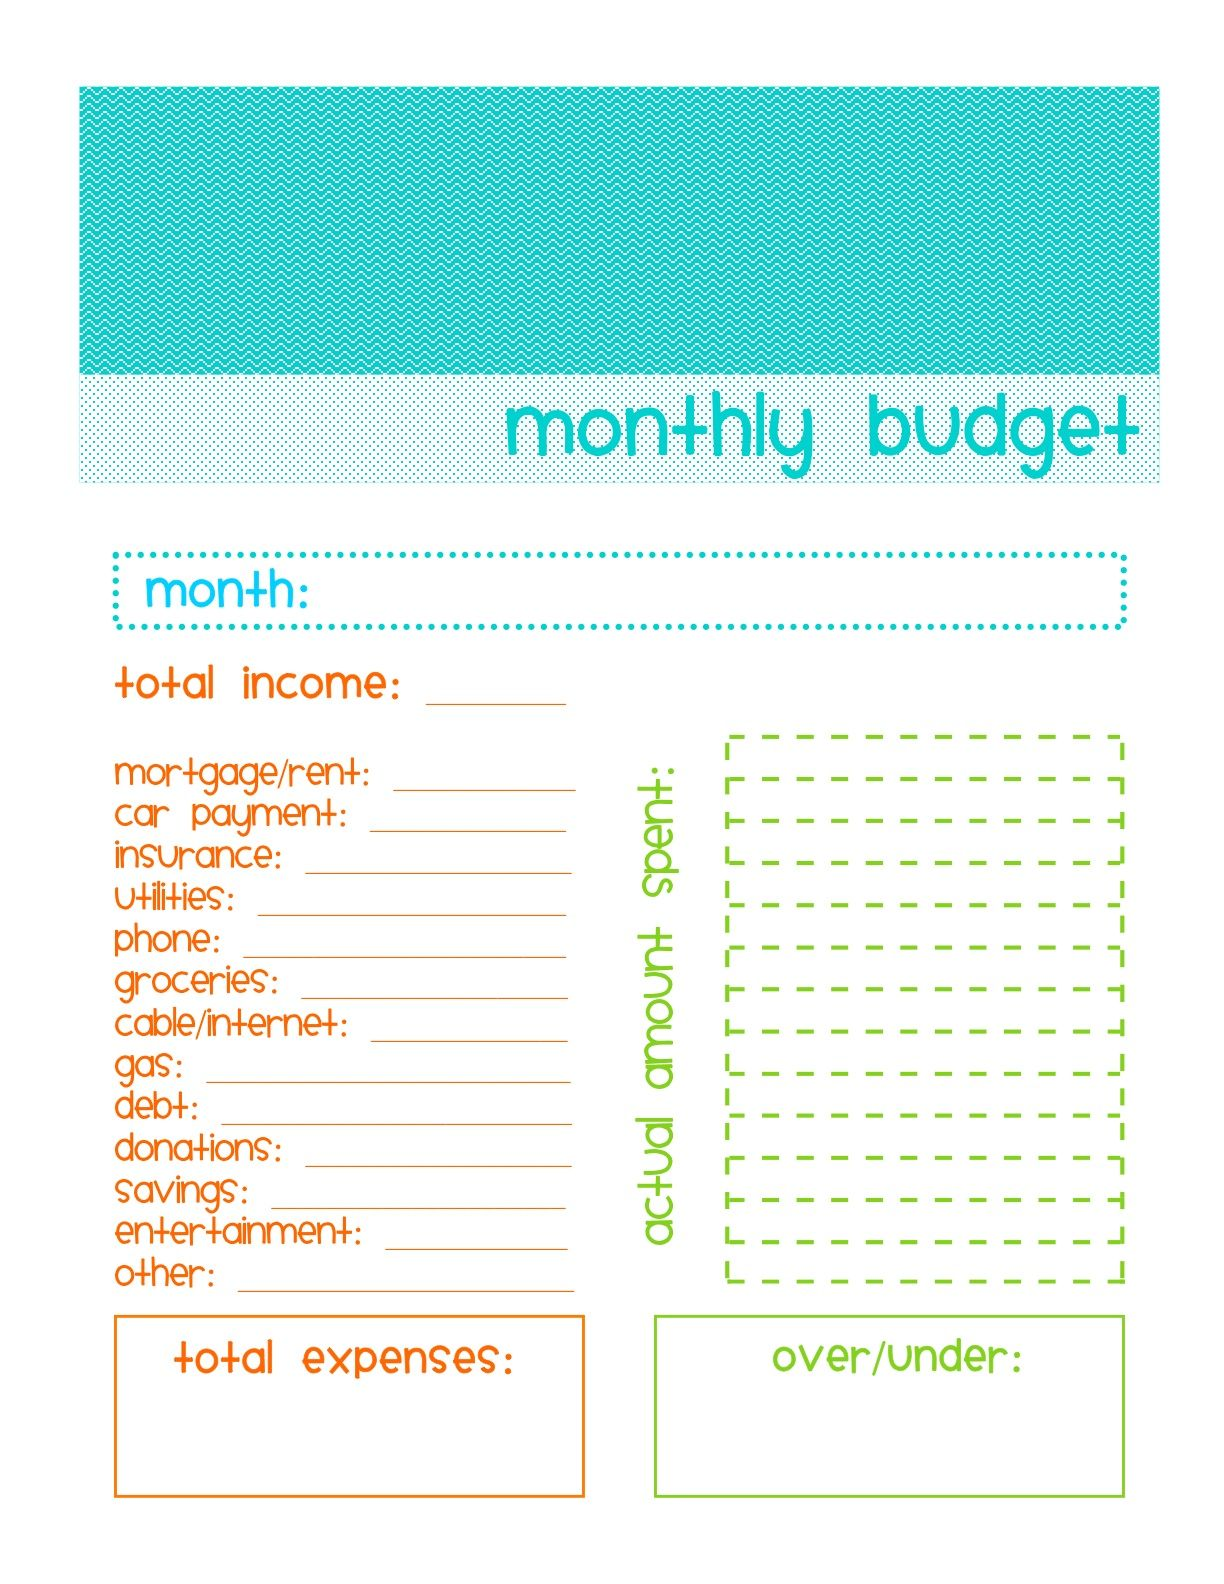 Simple Budget Template Printable | Join The Conversation Cancel Reply